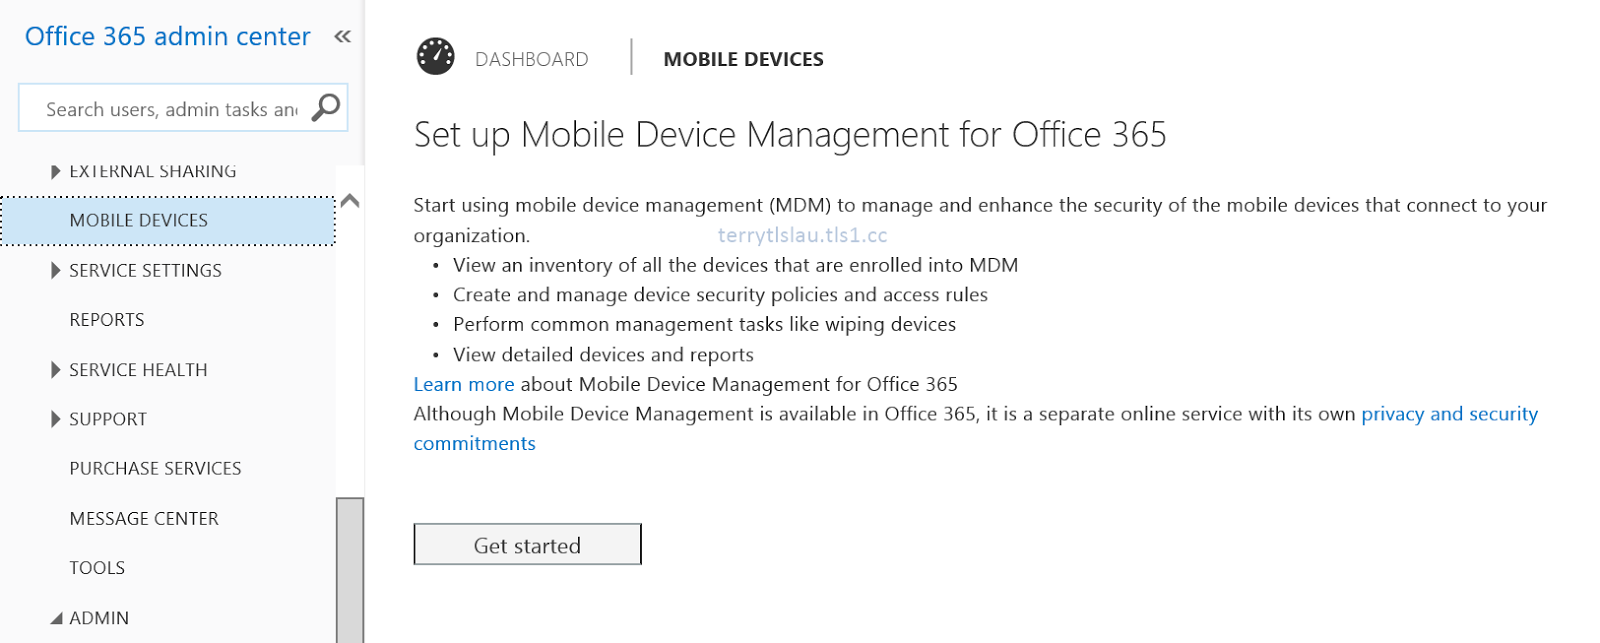 Terry Lus Blog Mobile Device Management For Office 365